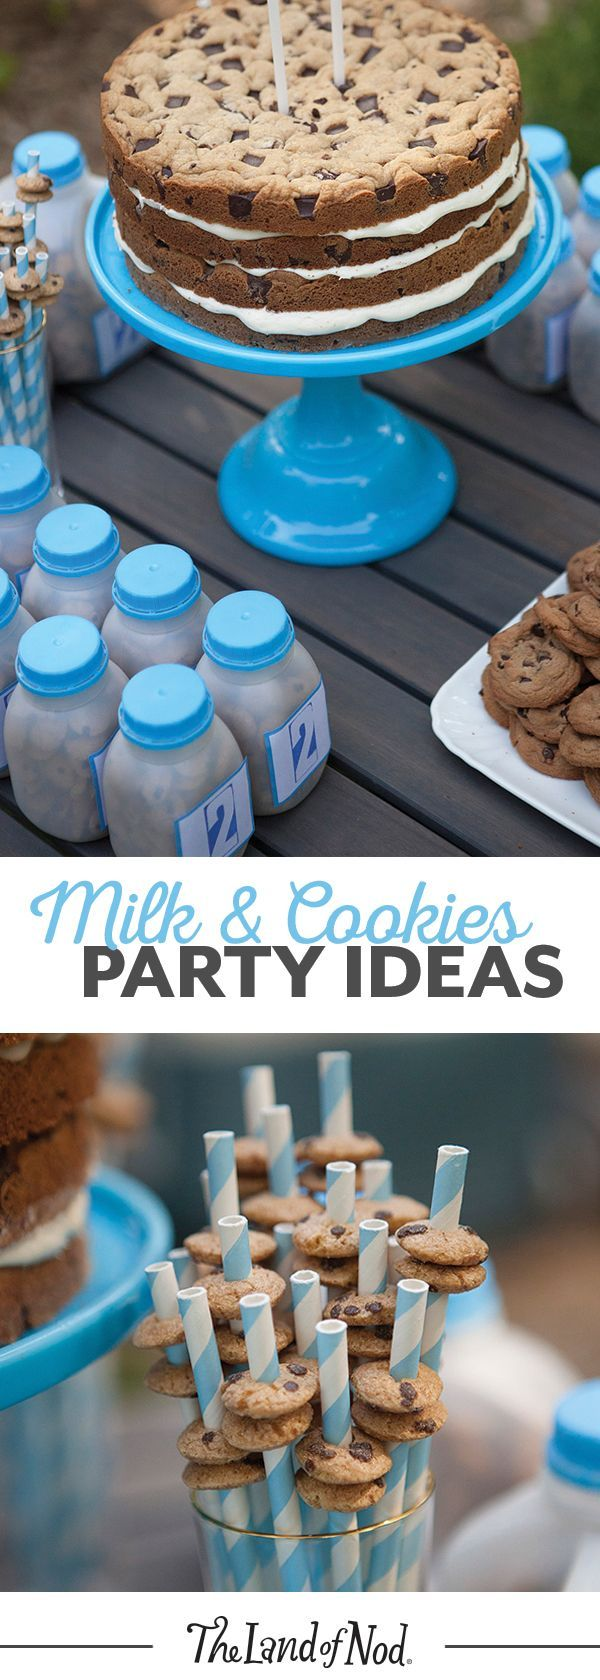 Got kids who love milk and cookies? You're in luck. Chef and mom Kelsey Nixon shows us how to throw the tastiest themed summer birthday party. And no girl or boy can resist her recipe for a chocolate chip cookie layered cake.